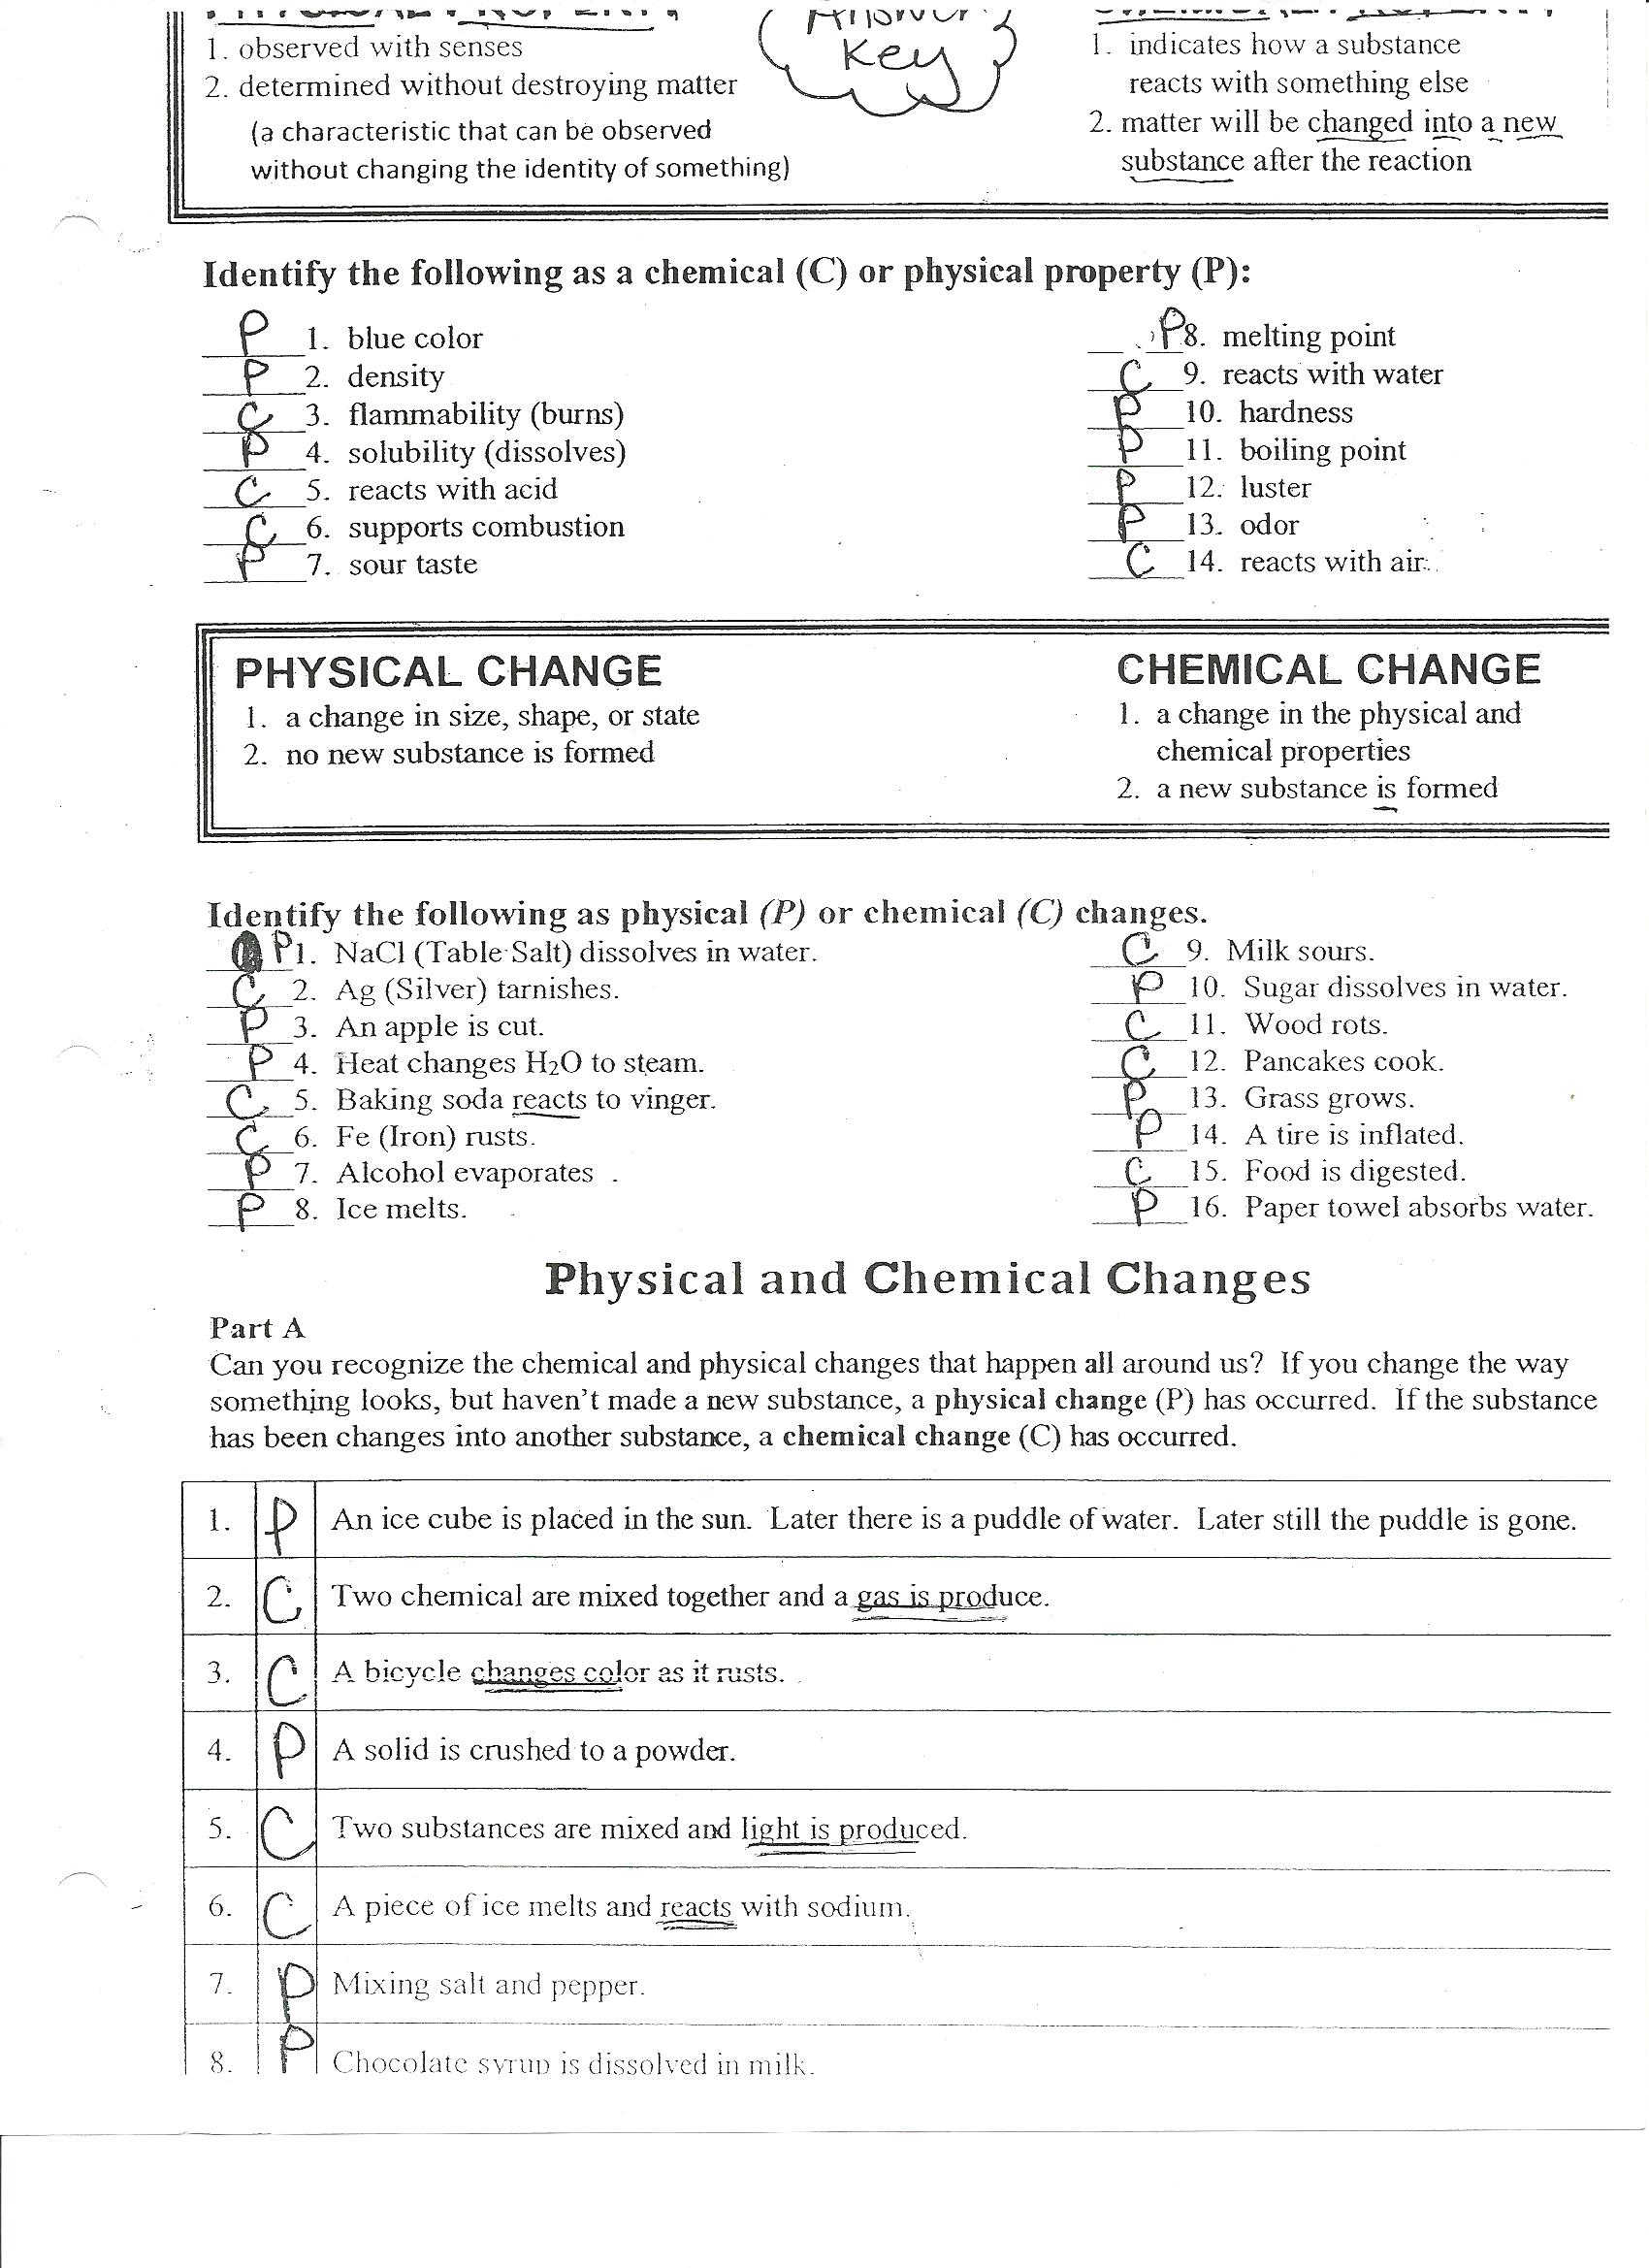 28 Identifying Physical And Chemical Changes Worksheet